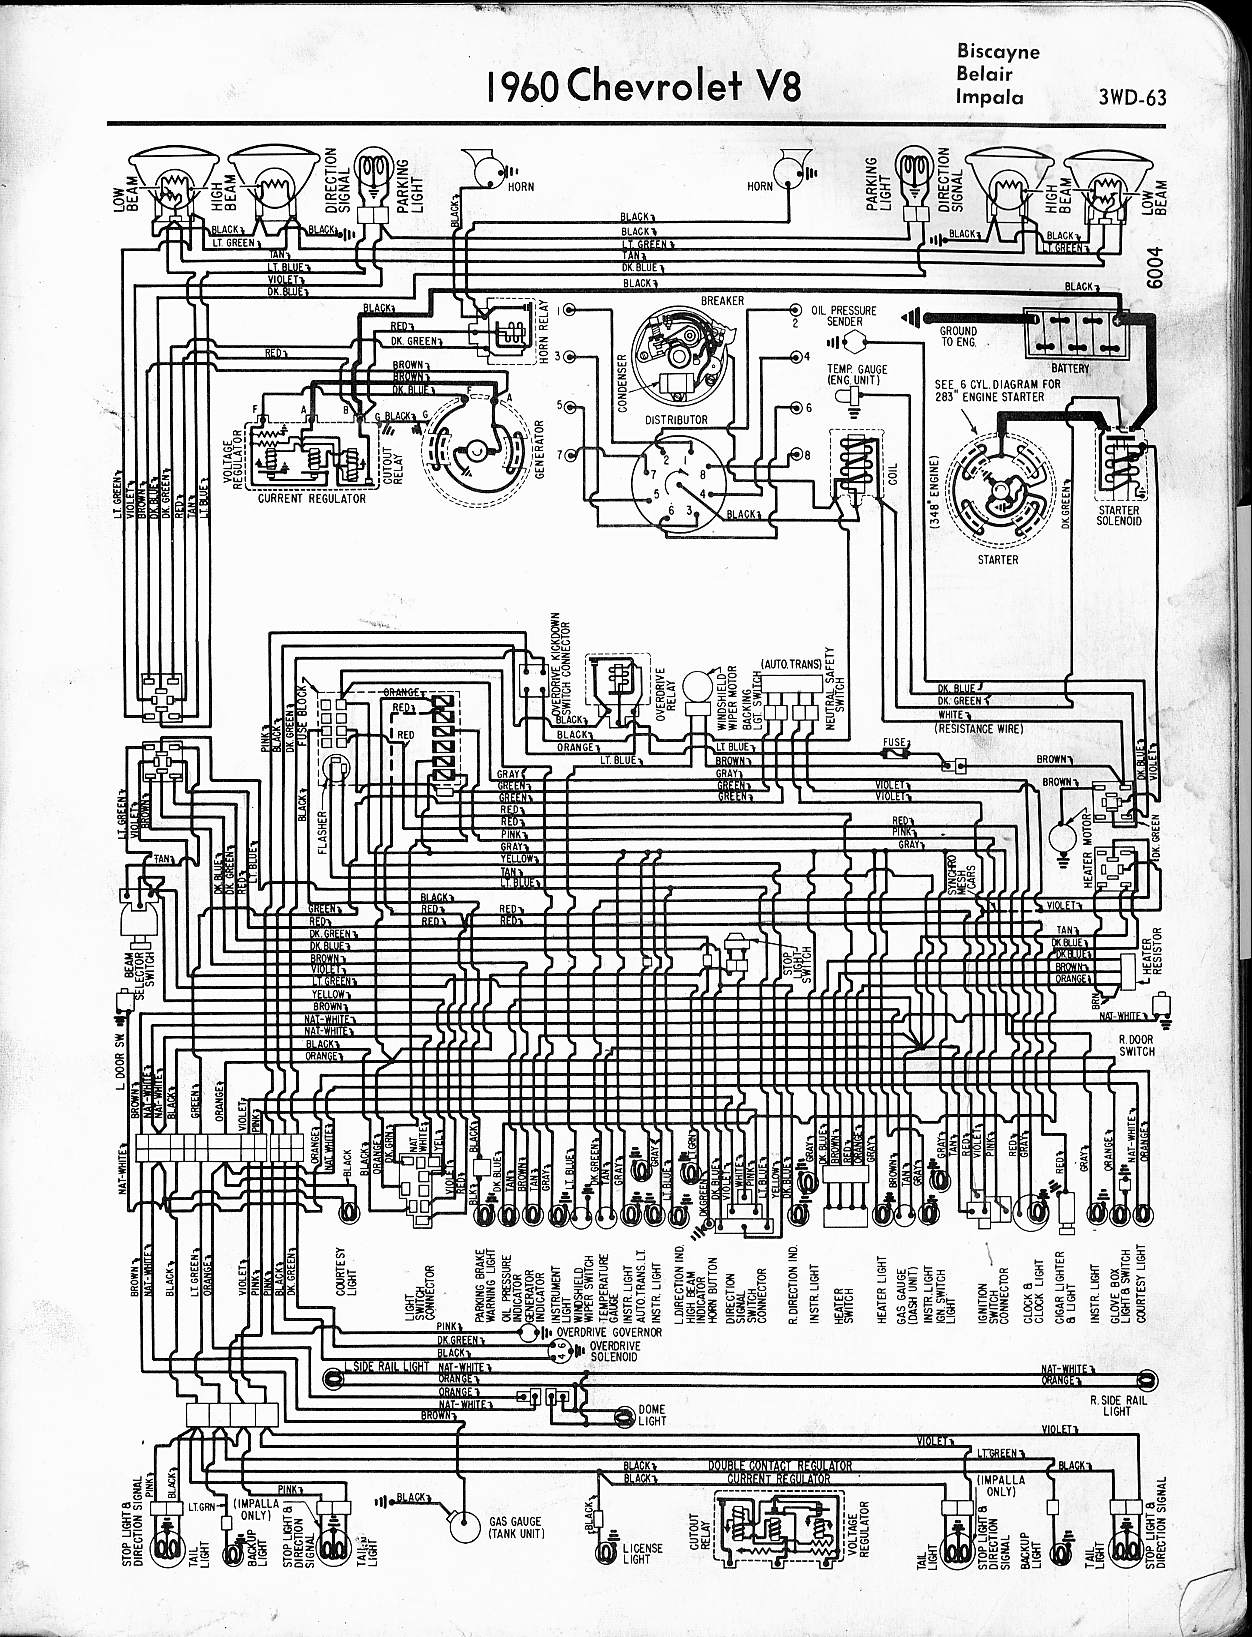 MWireChev60_3WD 063 57 65 chevy wiring diagrams 1960 Chevy Wiring Diagram at fashall.co